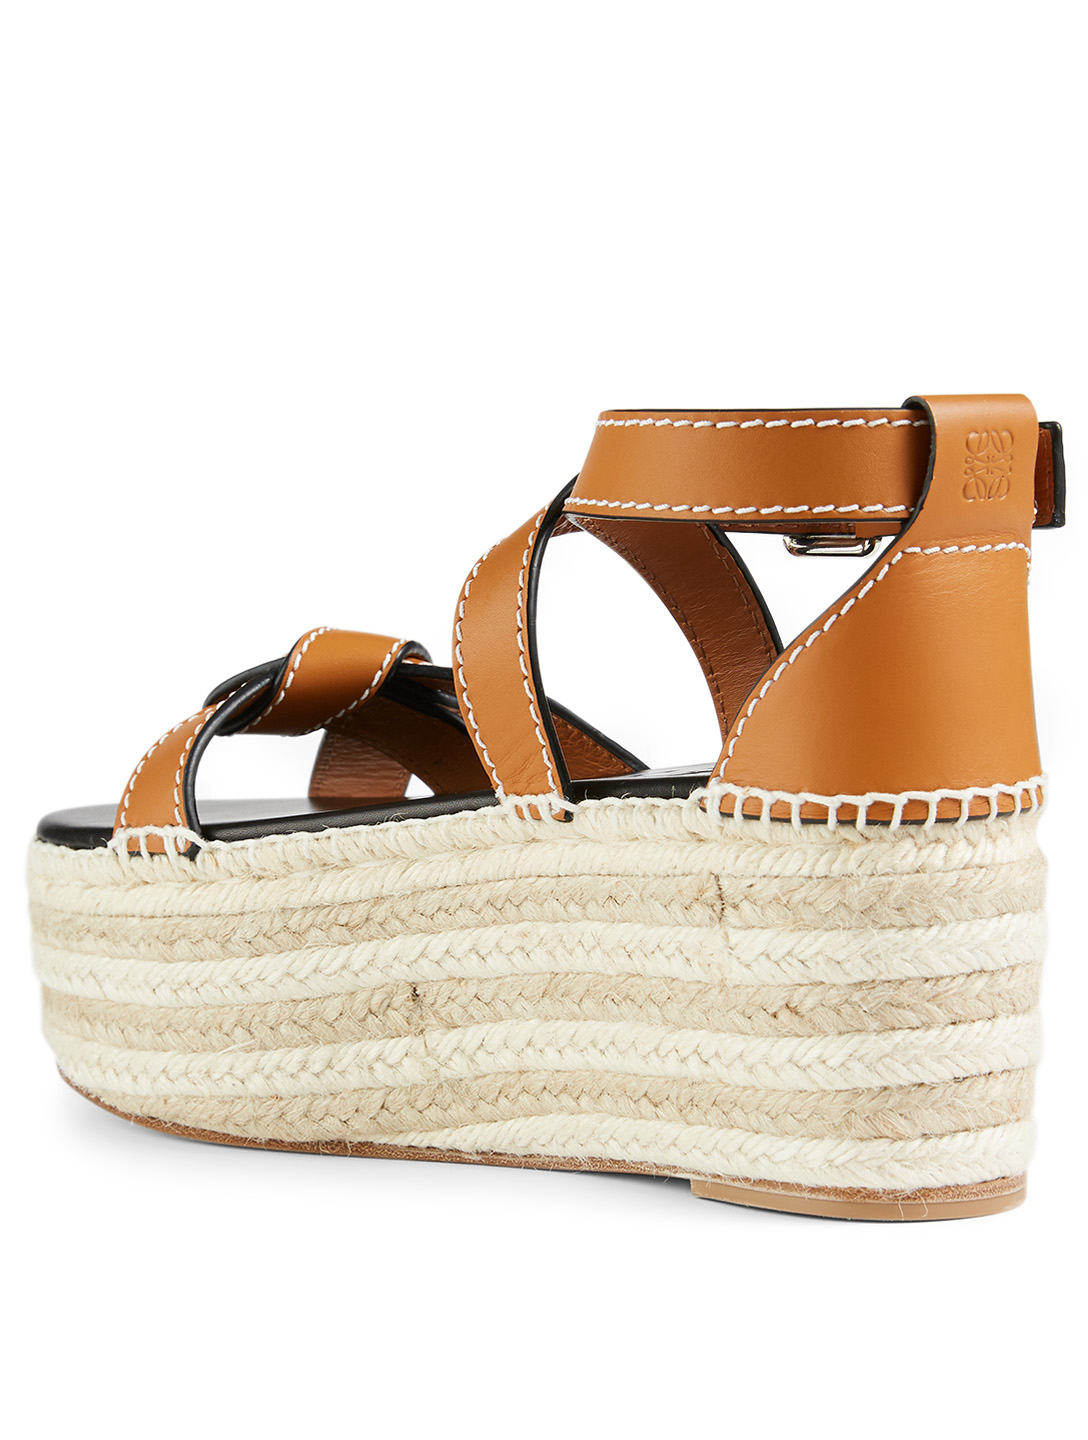 LOEWE Gate Leather Wedge Espadrille Sandals Women's Brown